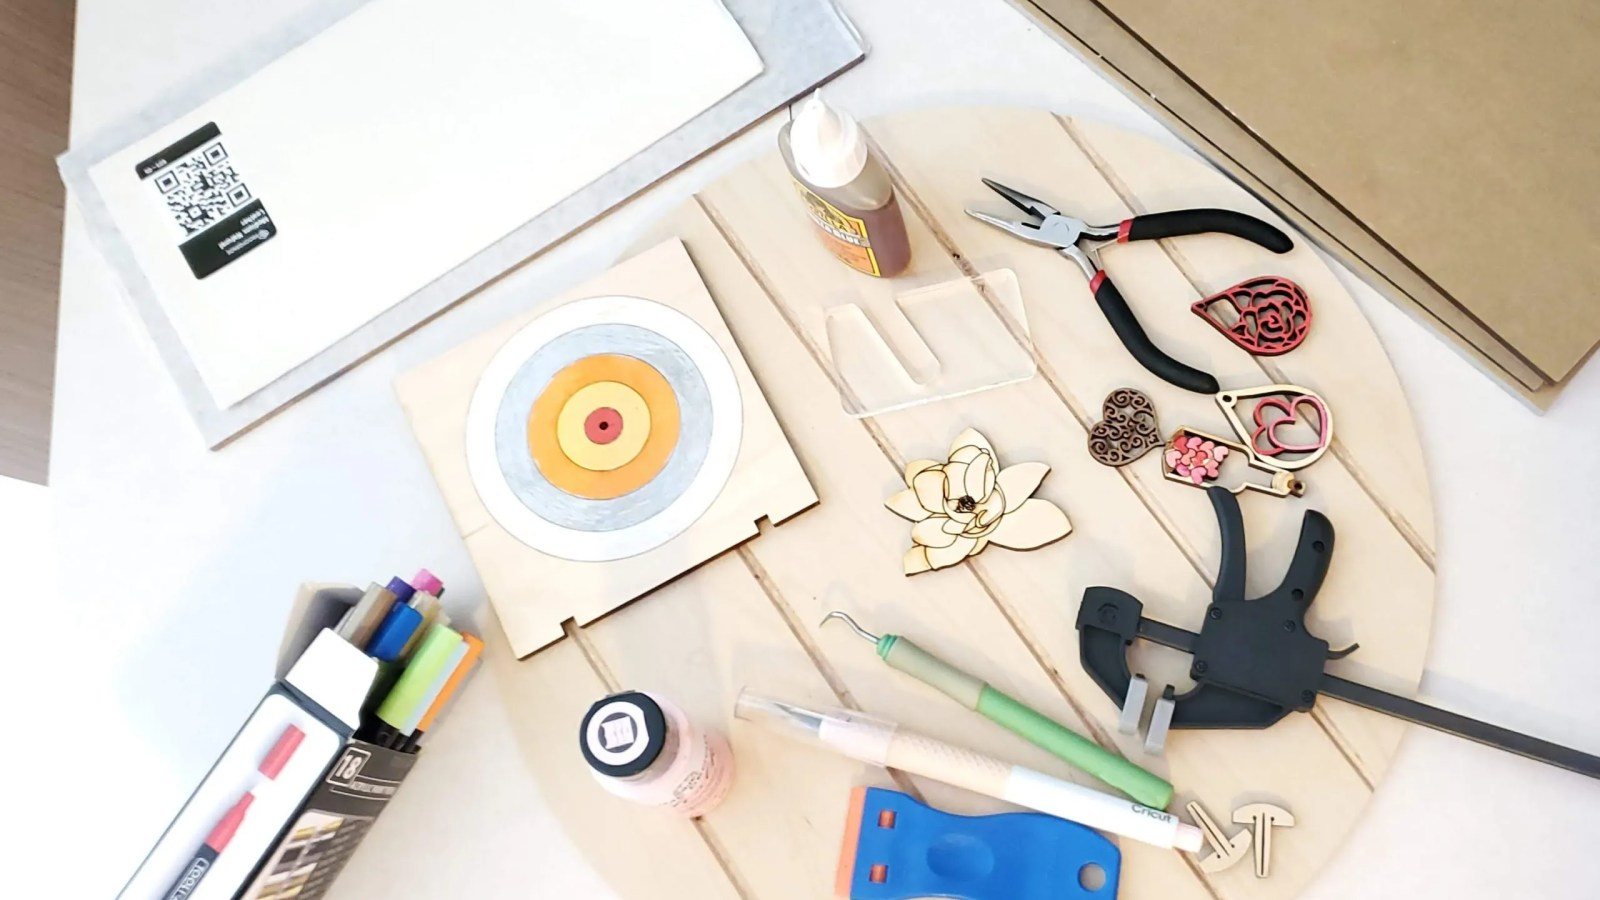 Favorite materials, supplies and tools to use with Glowforge